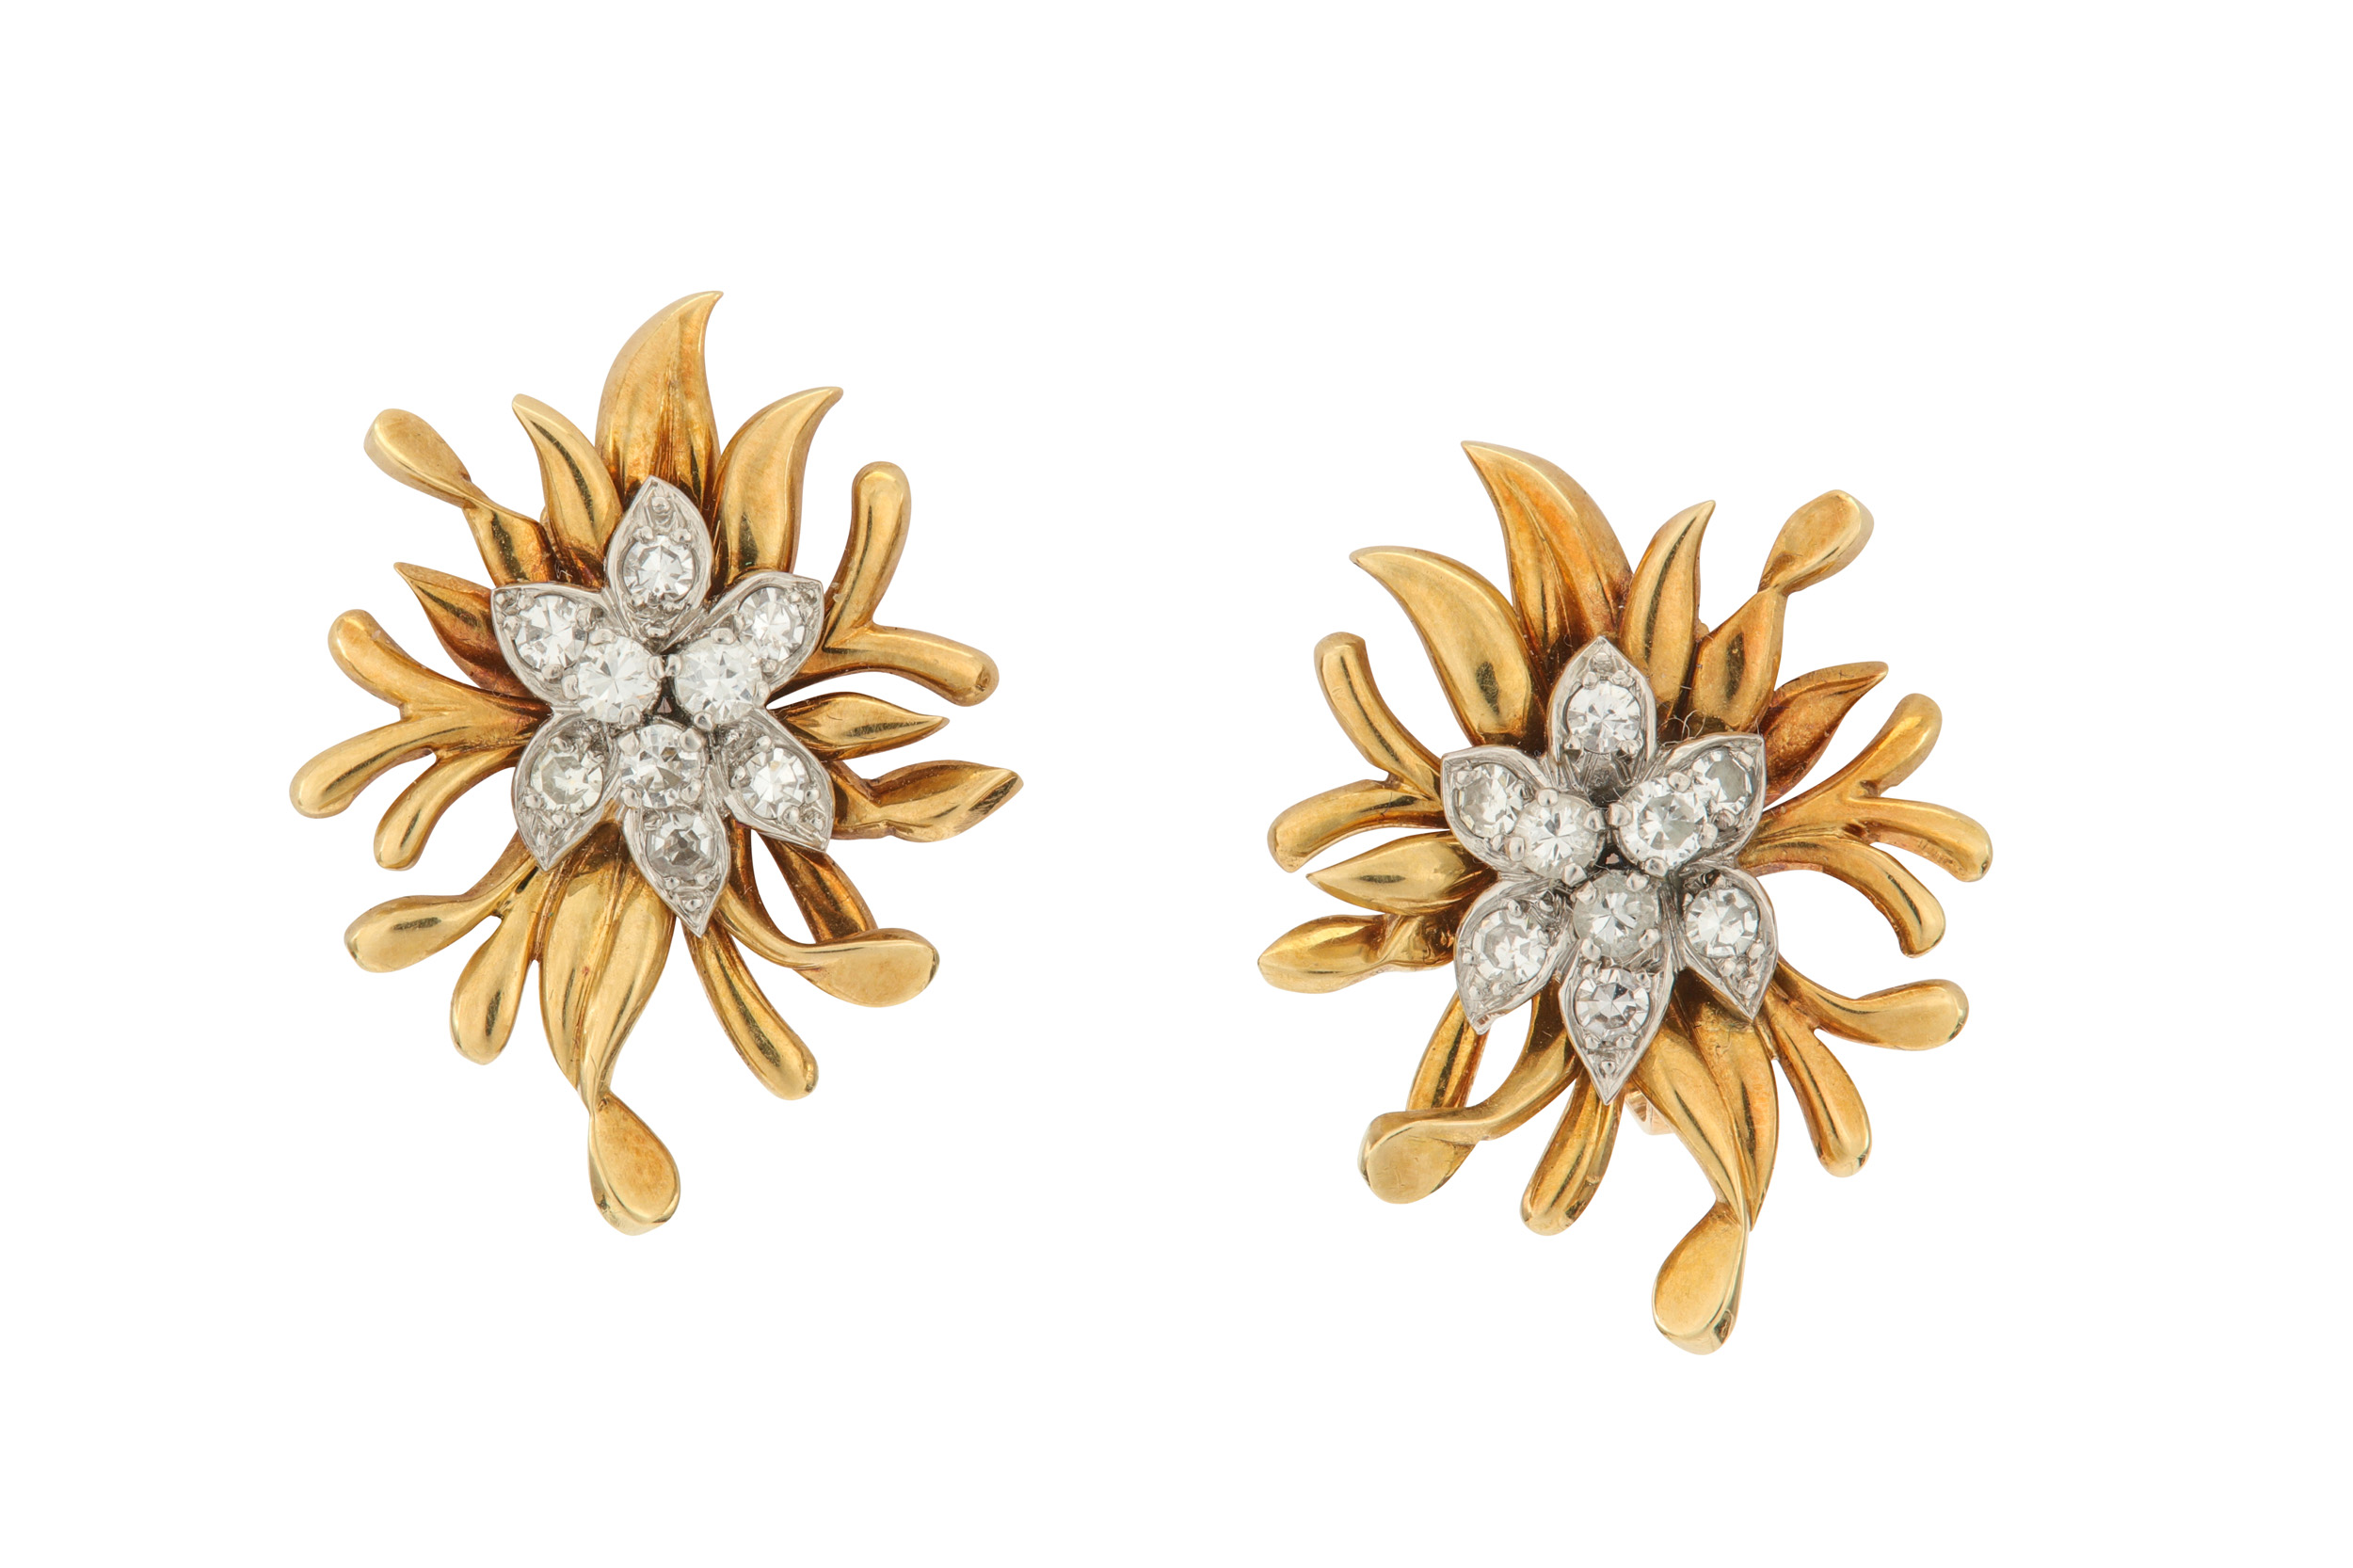 Lot 37 - A pair of diamond earclips, by Chaumet